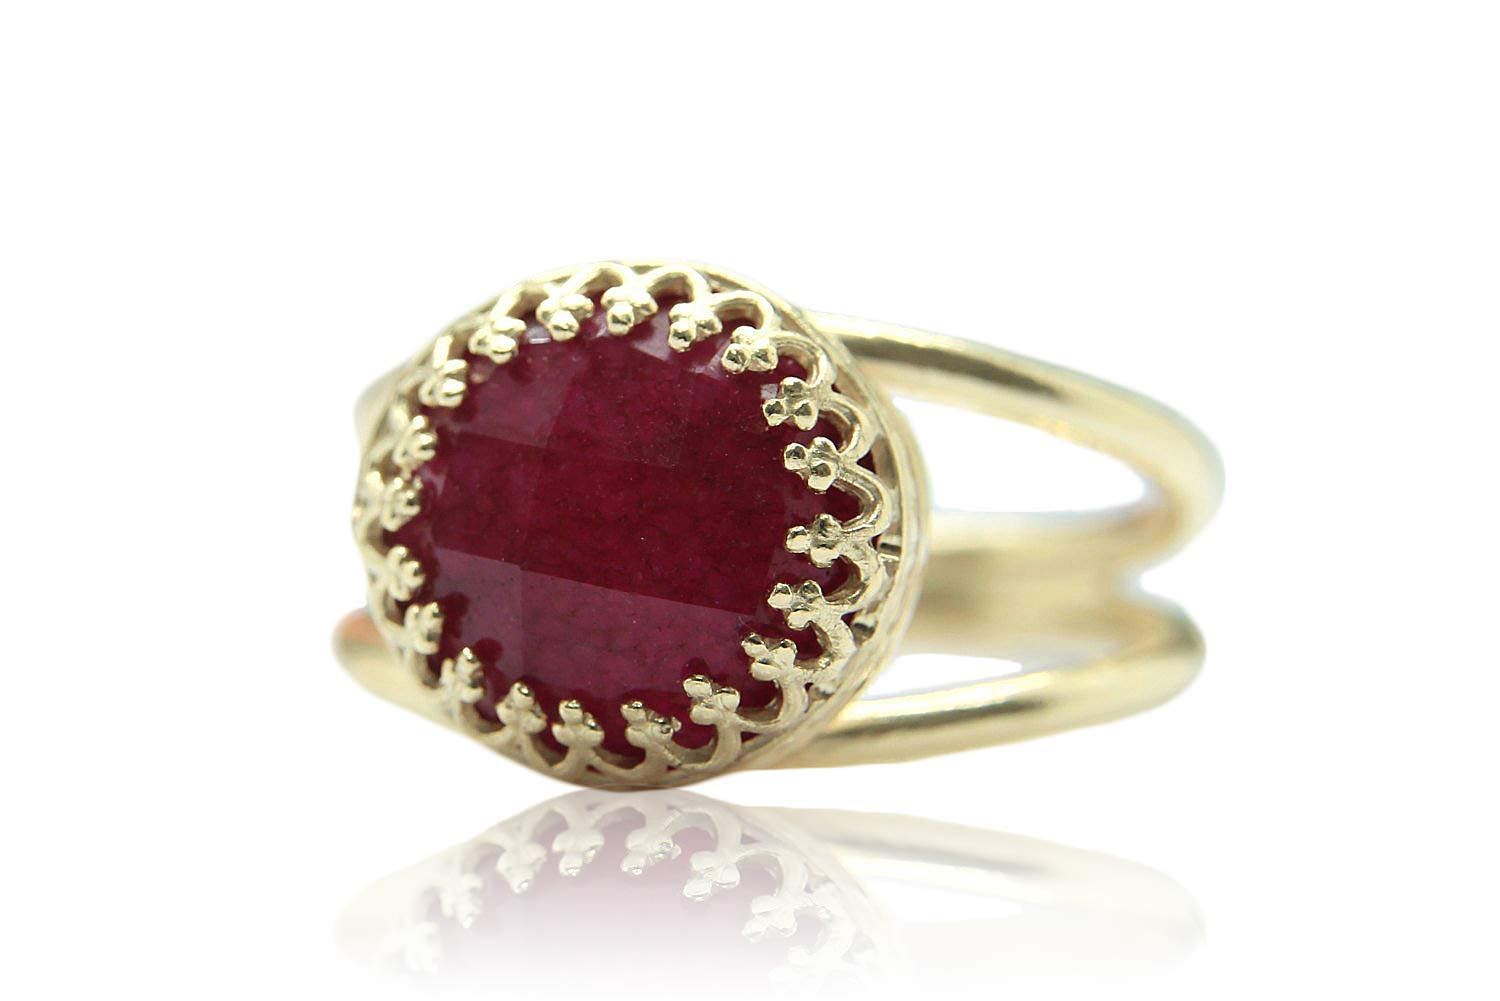 4CT Ruby Ring by Anemone Jewelry - Adorable Rose Gold Ring - AA Ruby 10 Millimeter Ring with All Sizes and Free Fancy Ring Gift Box - Handmade 611oRv2HCjL